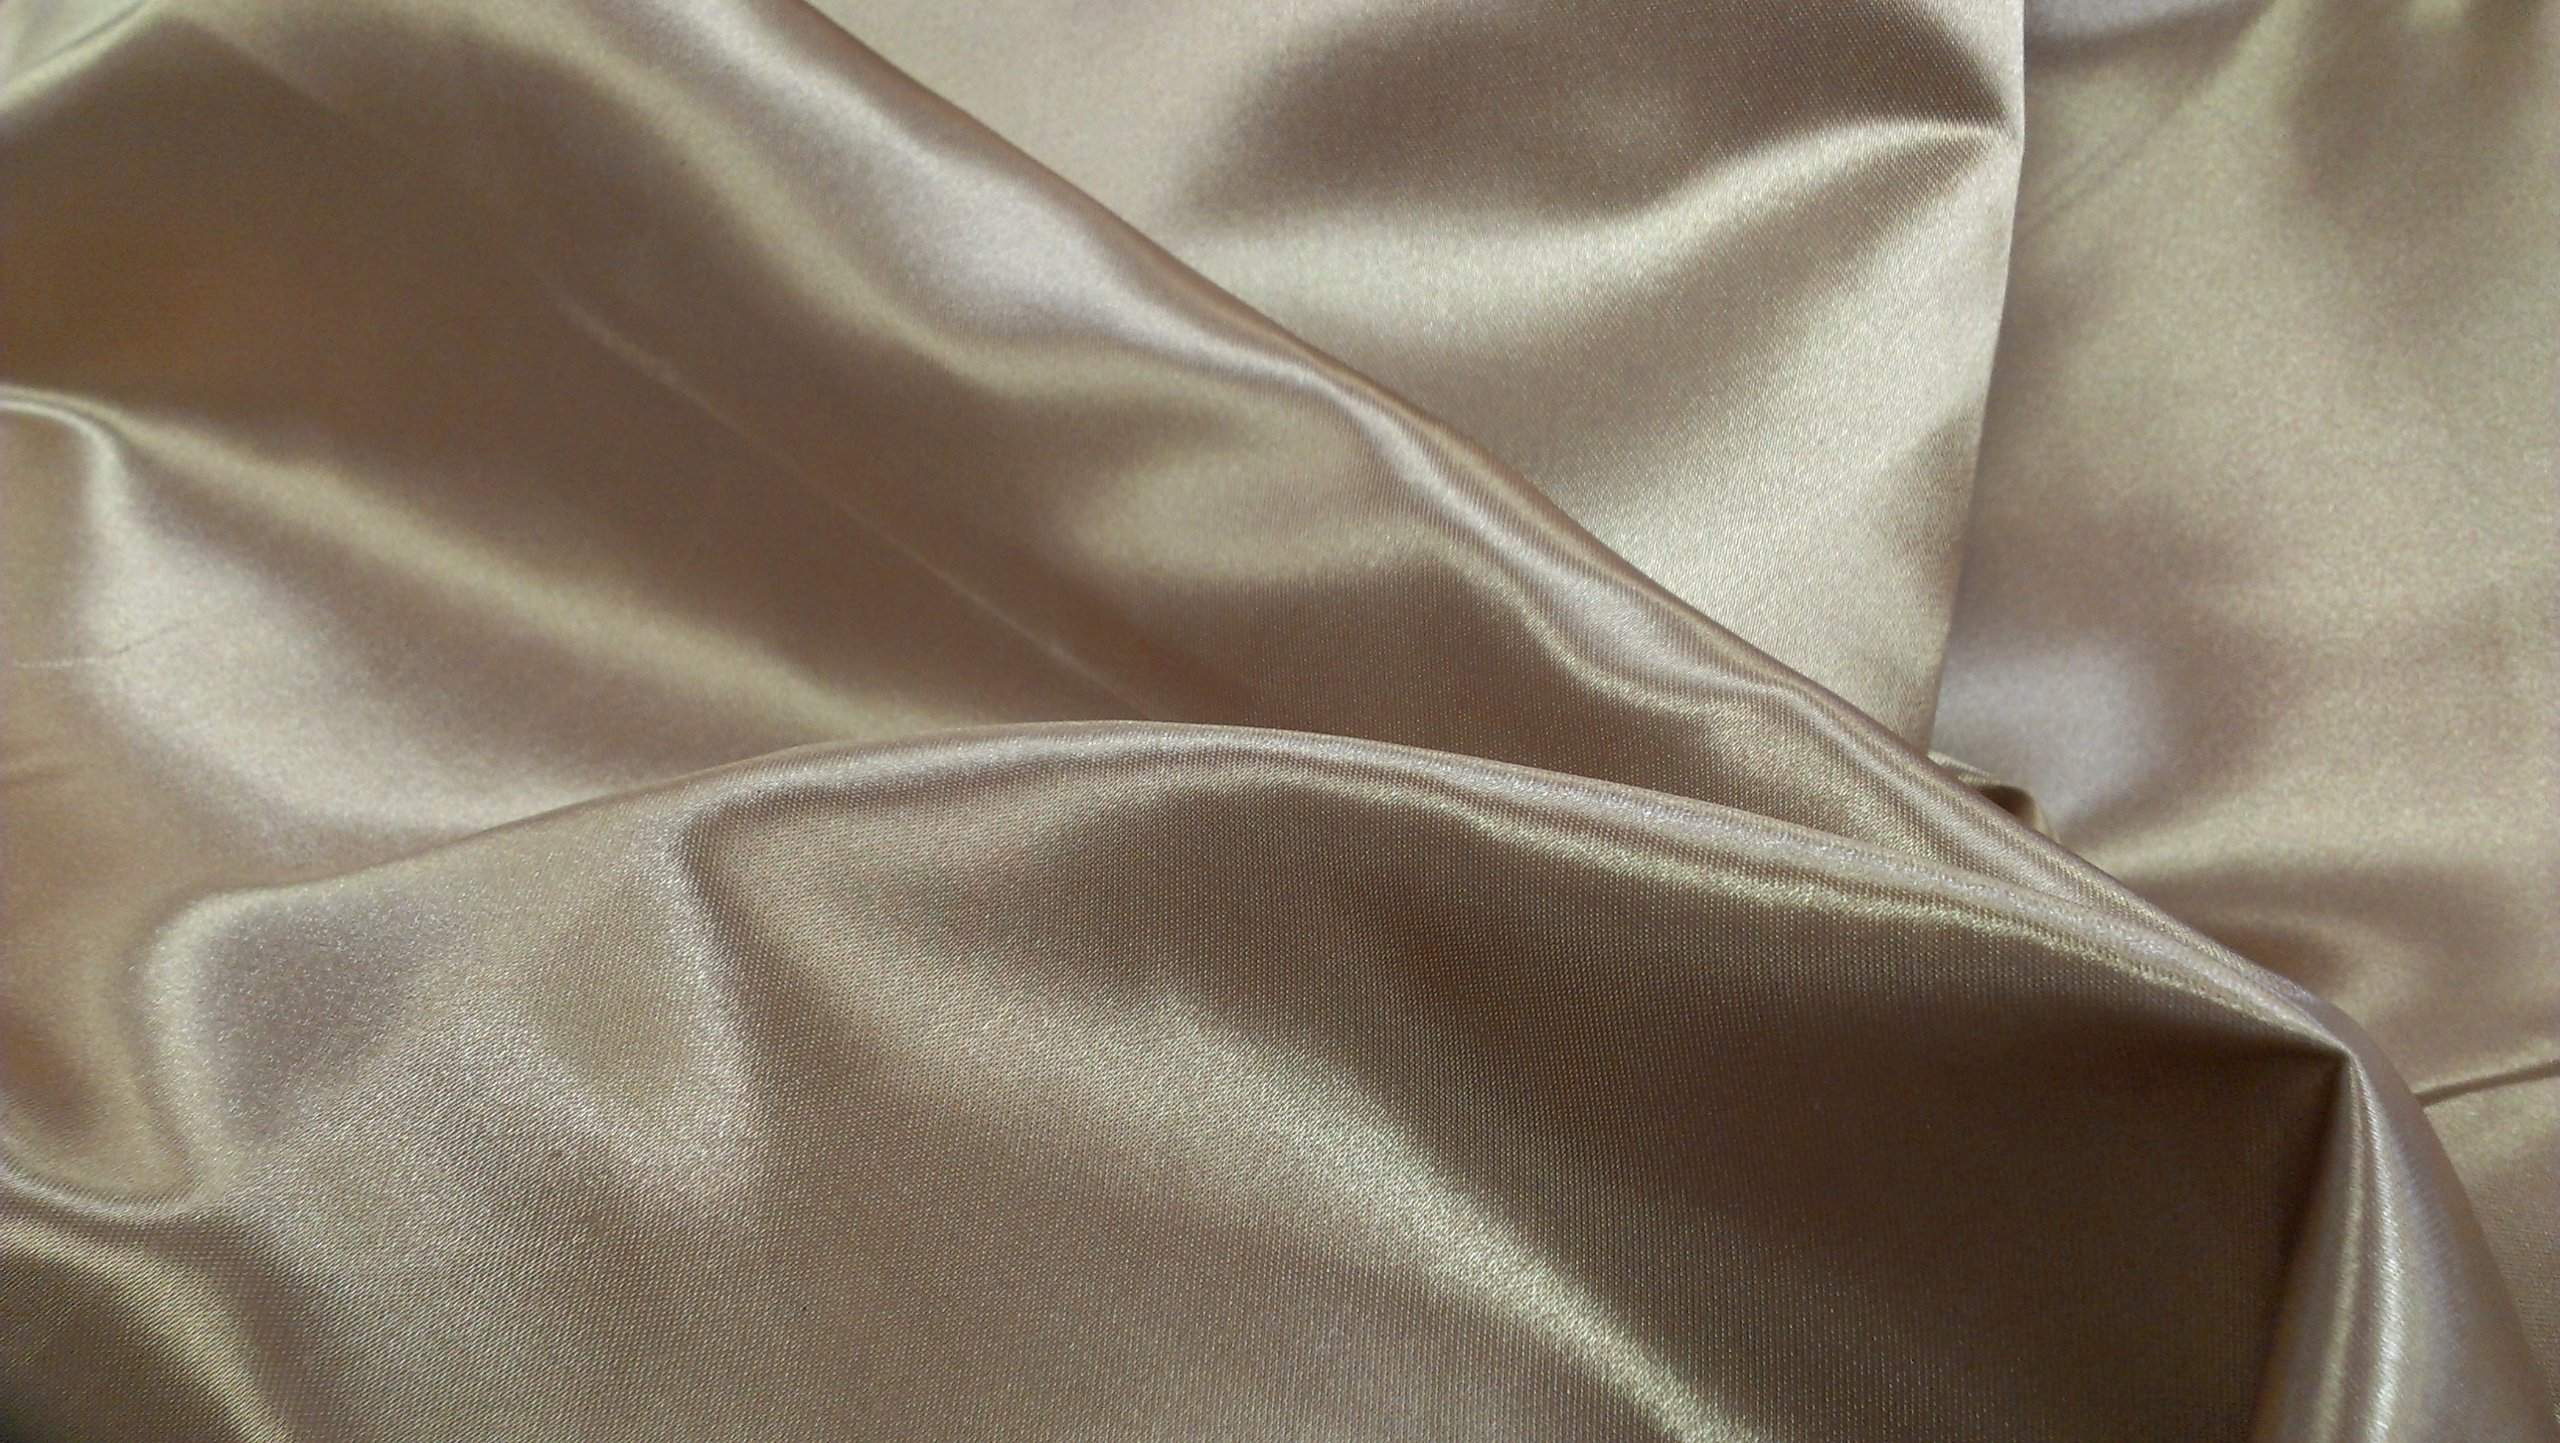 Satin Aisle Runner 50Ft 5 Ft wide - wedding, red carpet events - seamless (Copper)